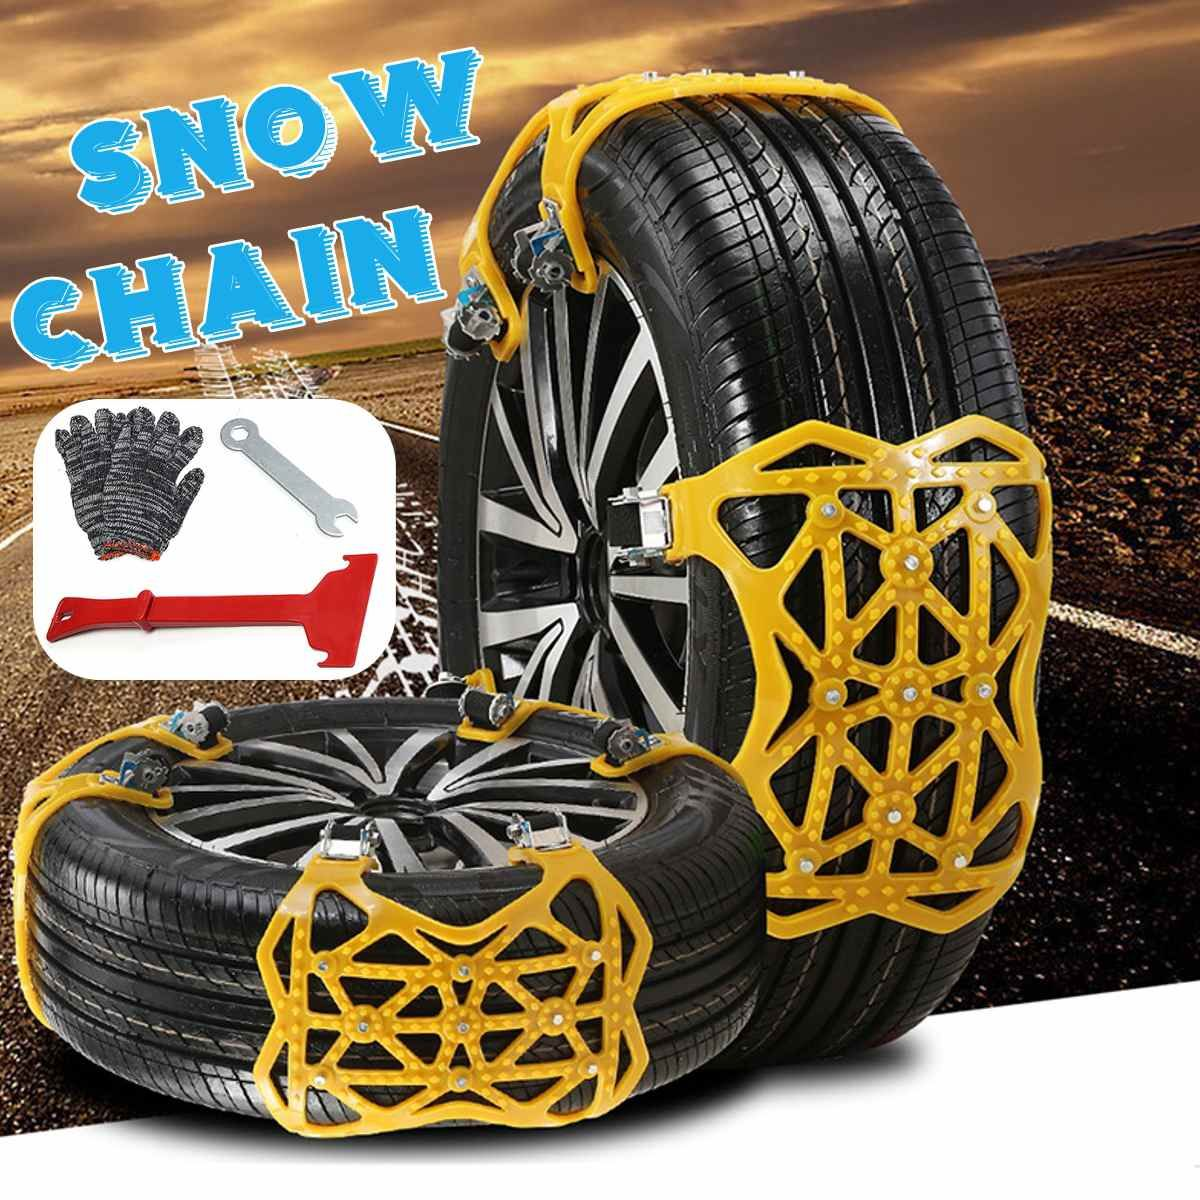 6pcs Thicker Anti-skid TPU Snow Chains Universal Car Suit Tyre General Automobile Tire For SUV Off-road Safety Chains Snow Mud